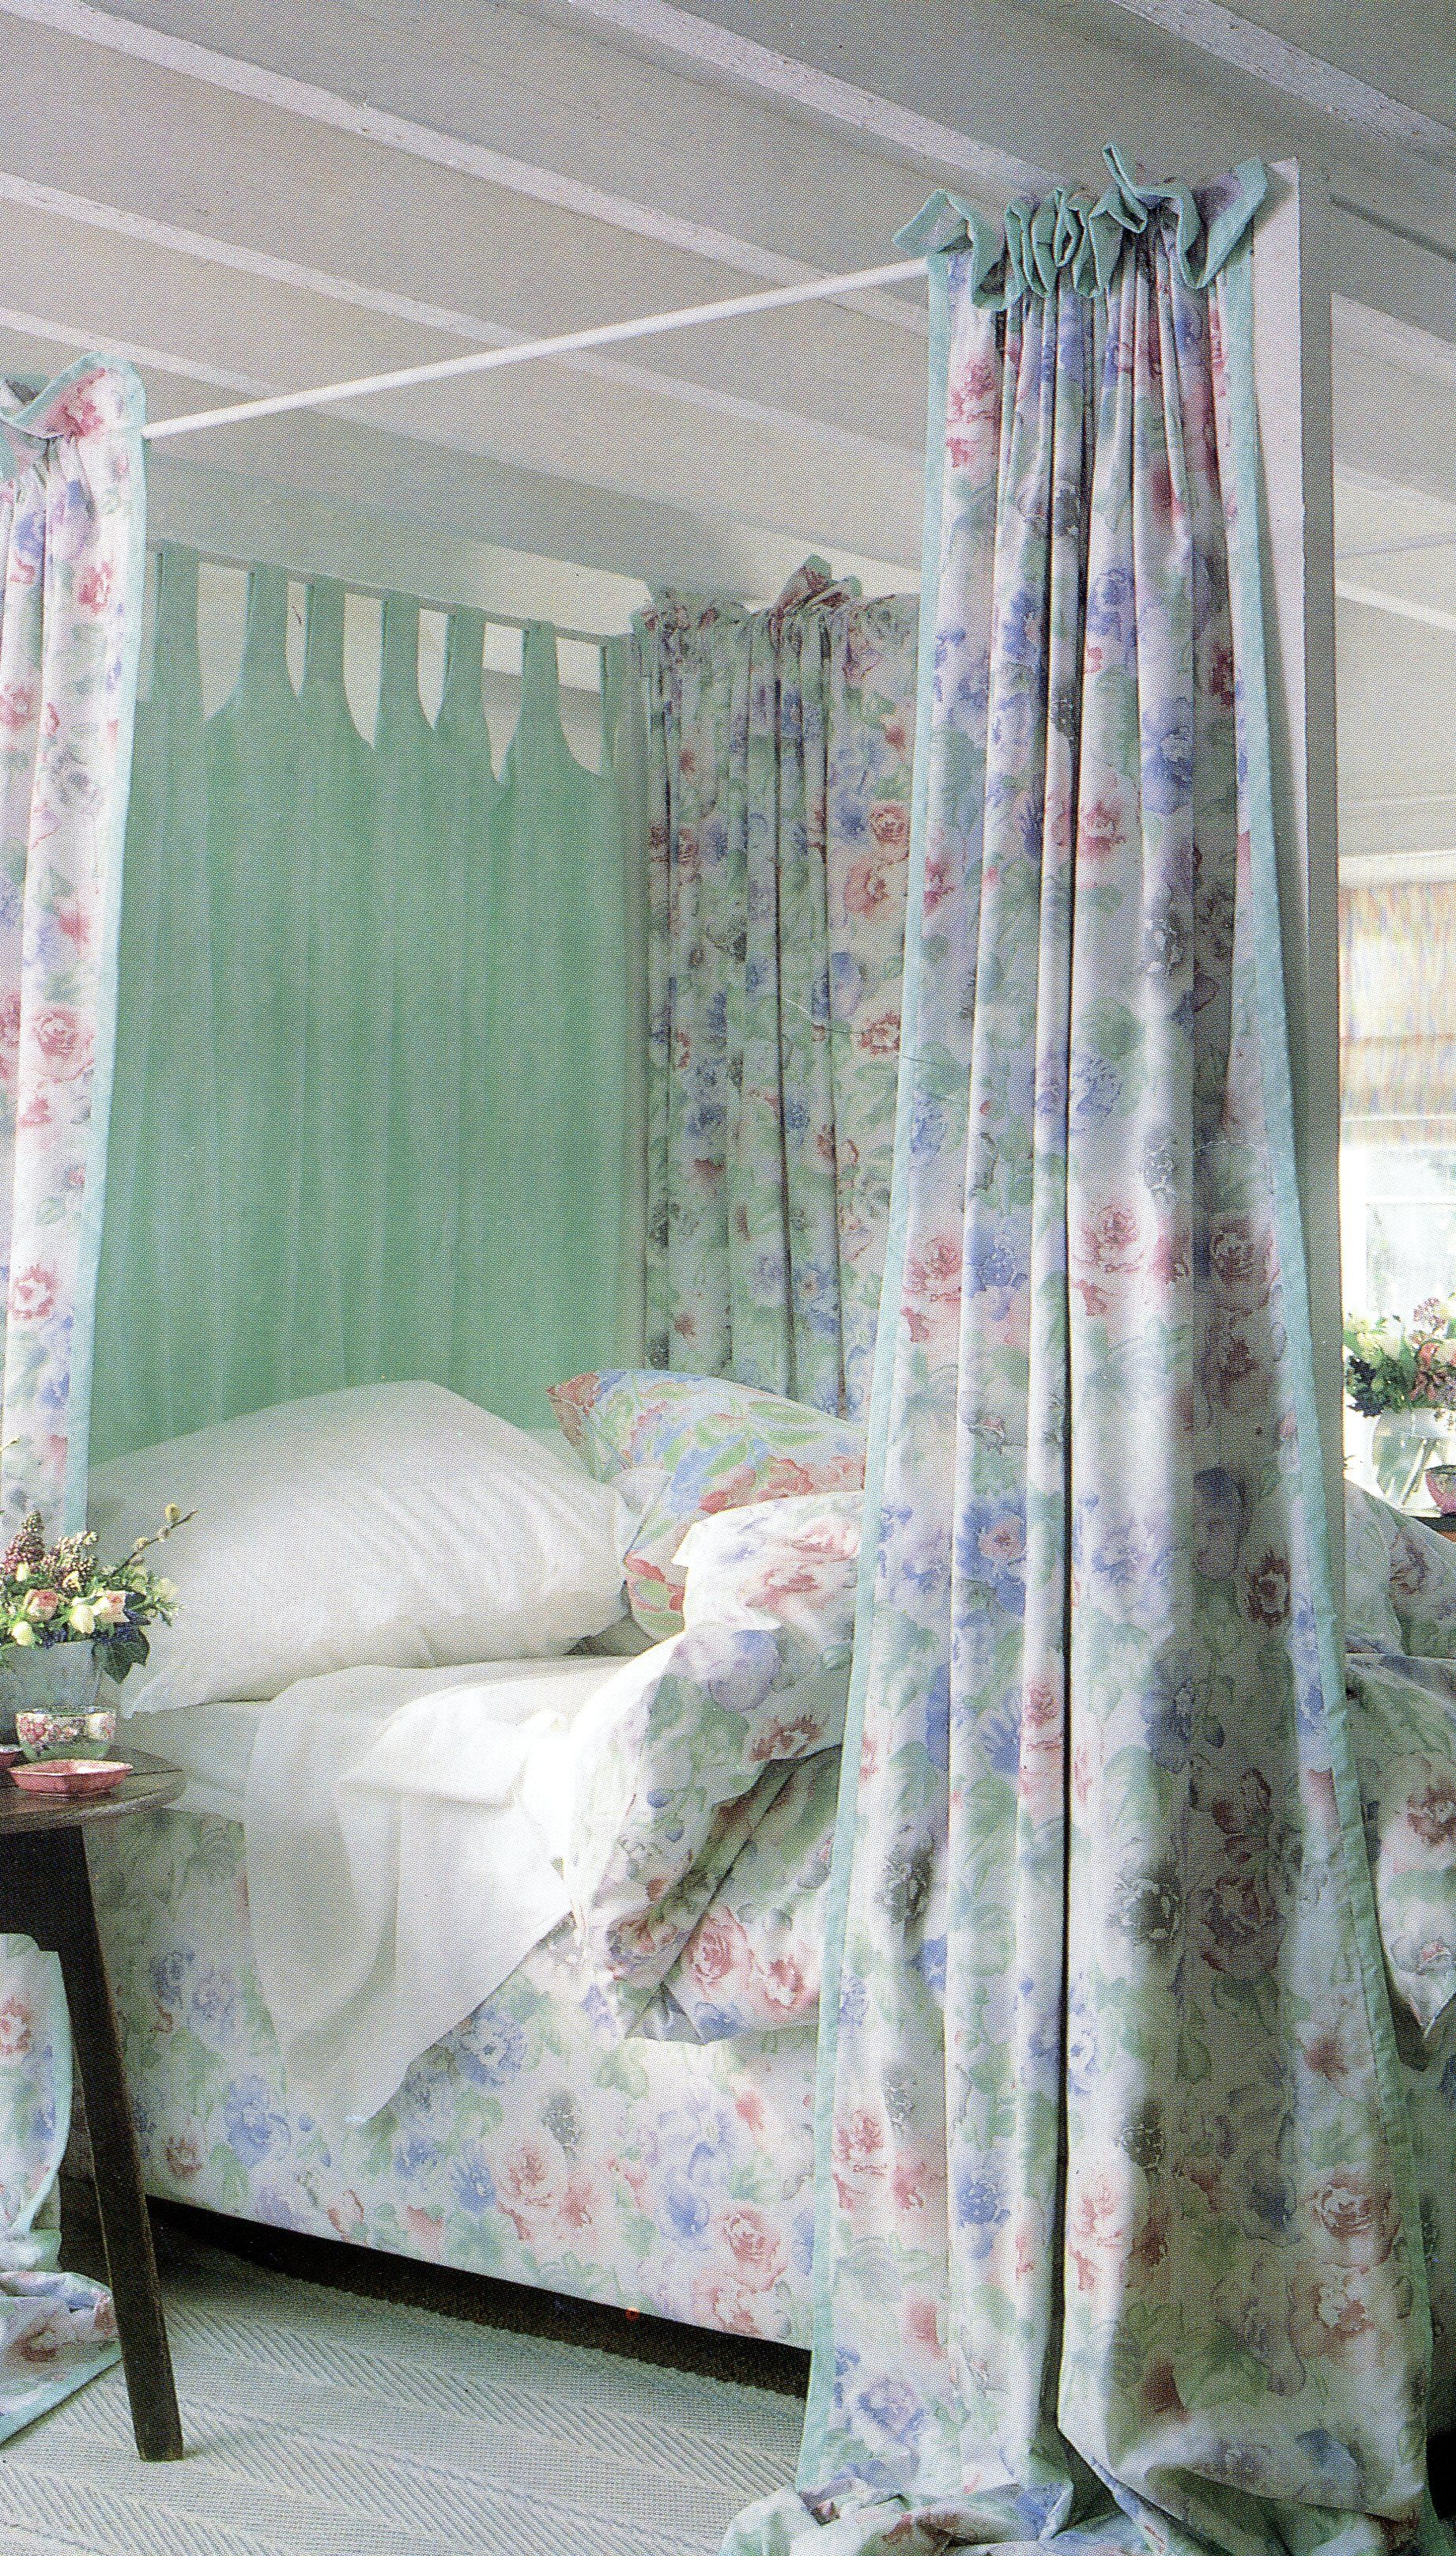 Creating a contemporary fourposter bed with ruched curtains and